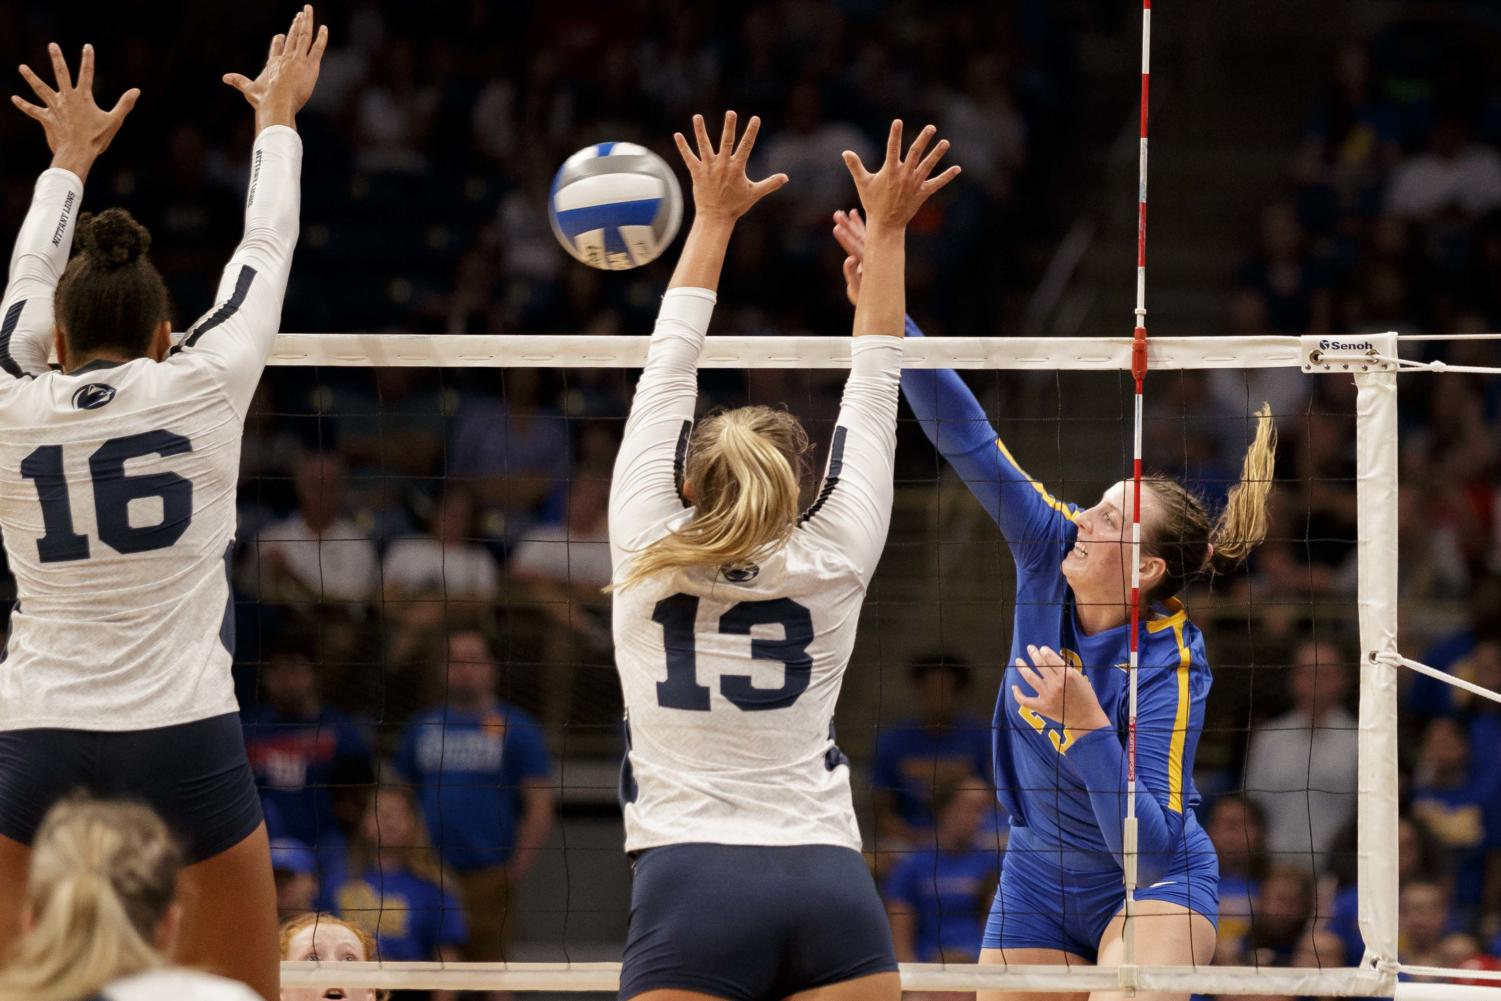 The Panthers moved to 15-0 in the ACC after a 3-1 win over FSU on Friday